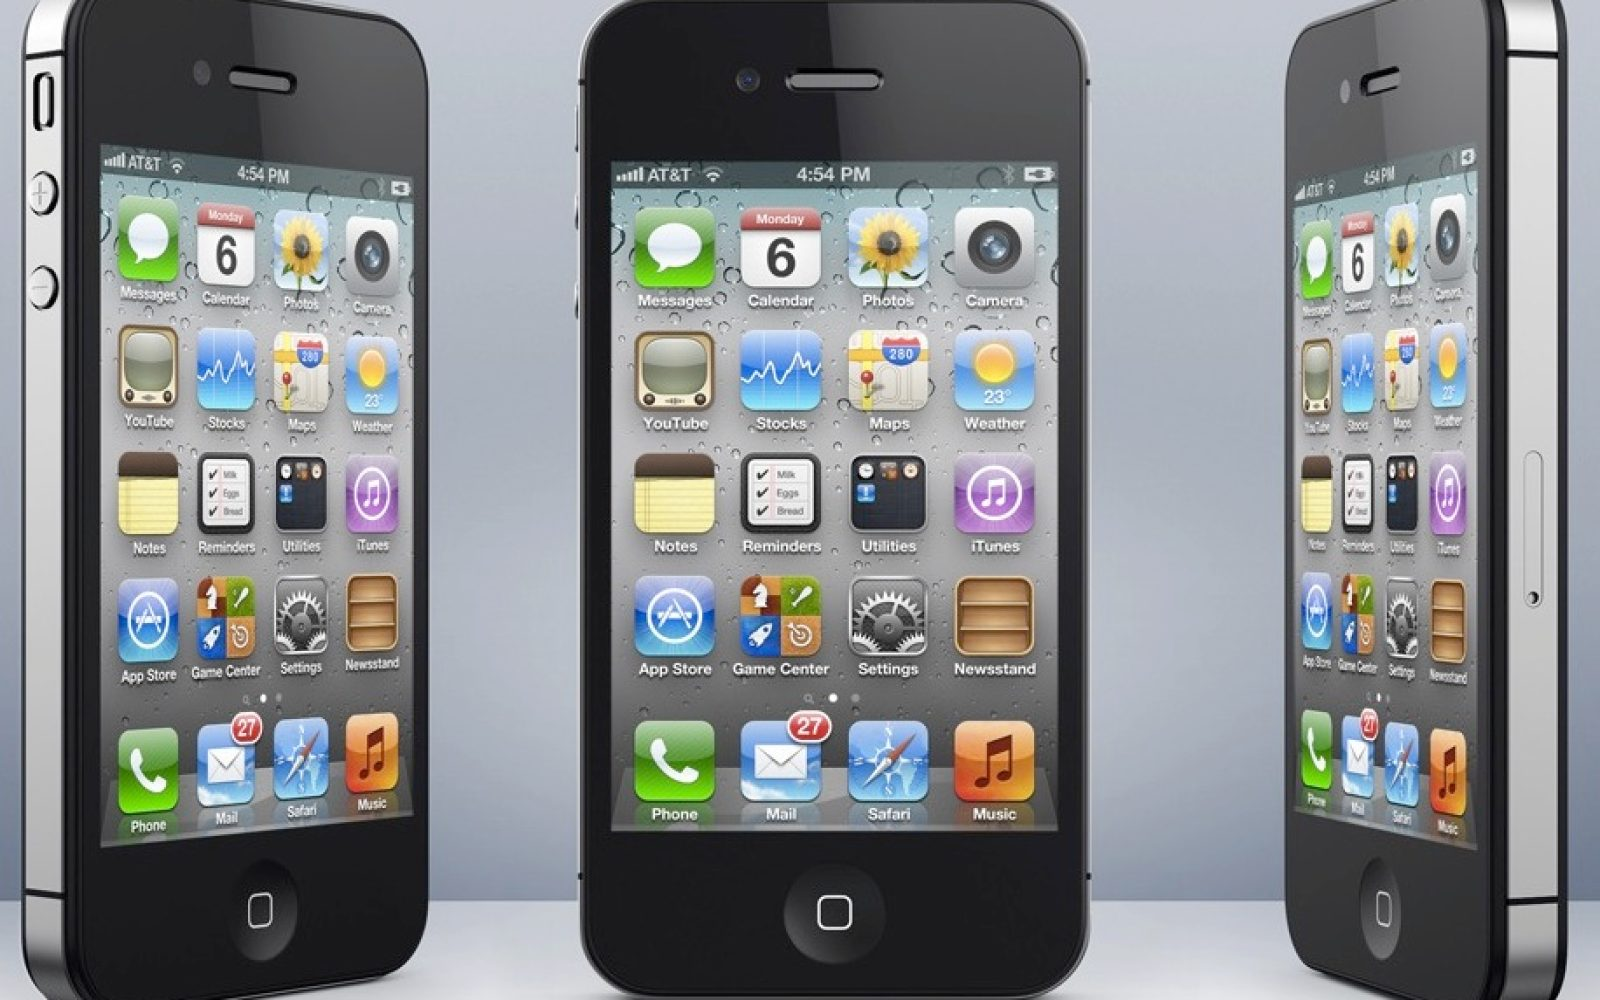 iPhone 4S with iPhone 4 design, dual-mode capability leaked by